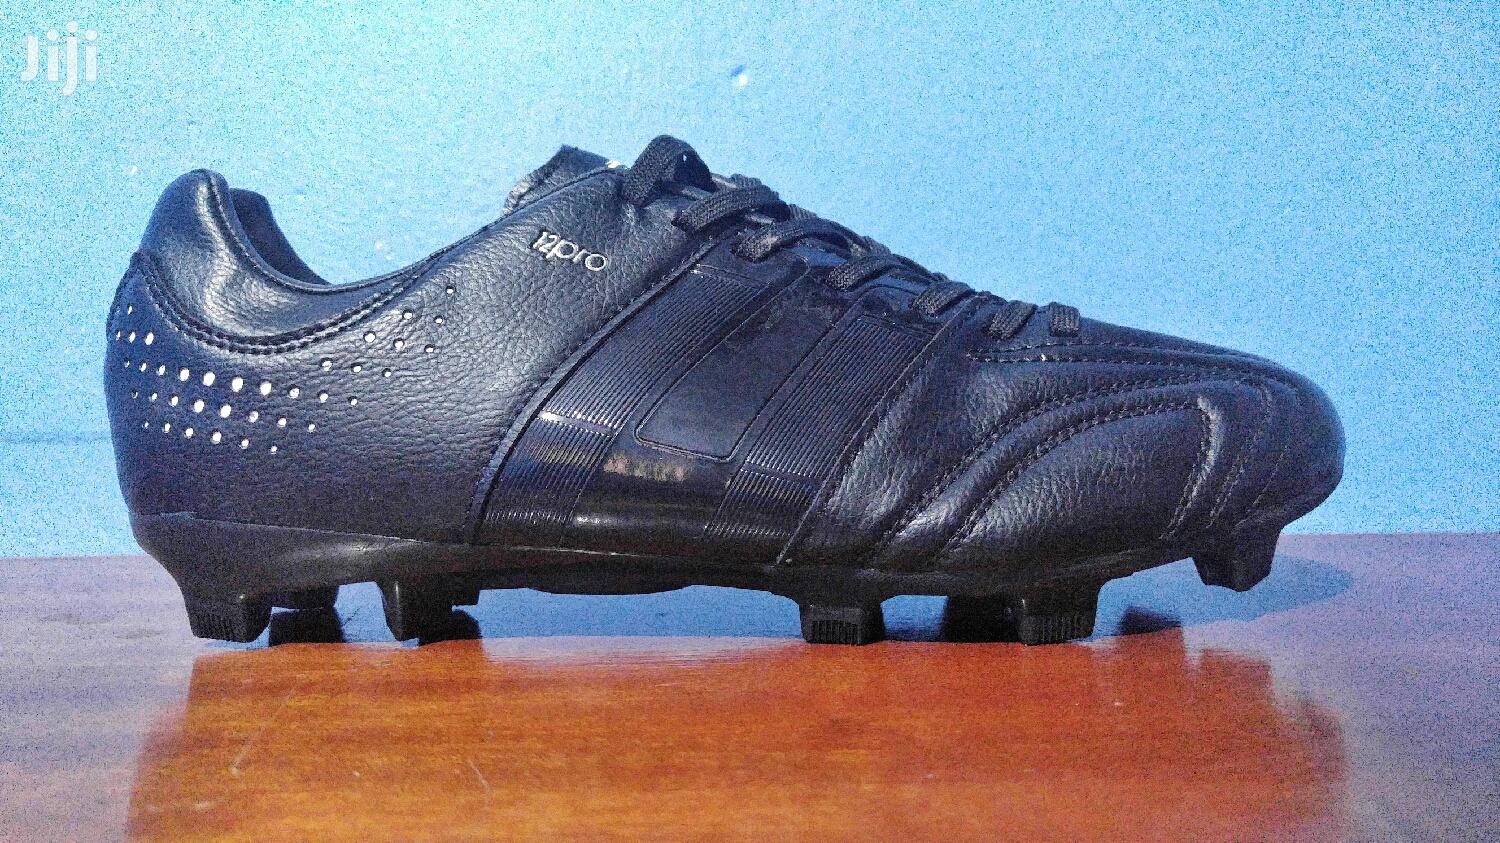 Black On Black Adidas 12pro By Meng Soccer Cleats Football Shoe | Shoes for sale in Kilimani, Nairobi, Kenya